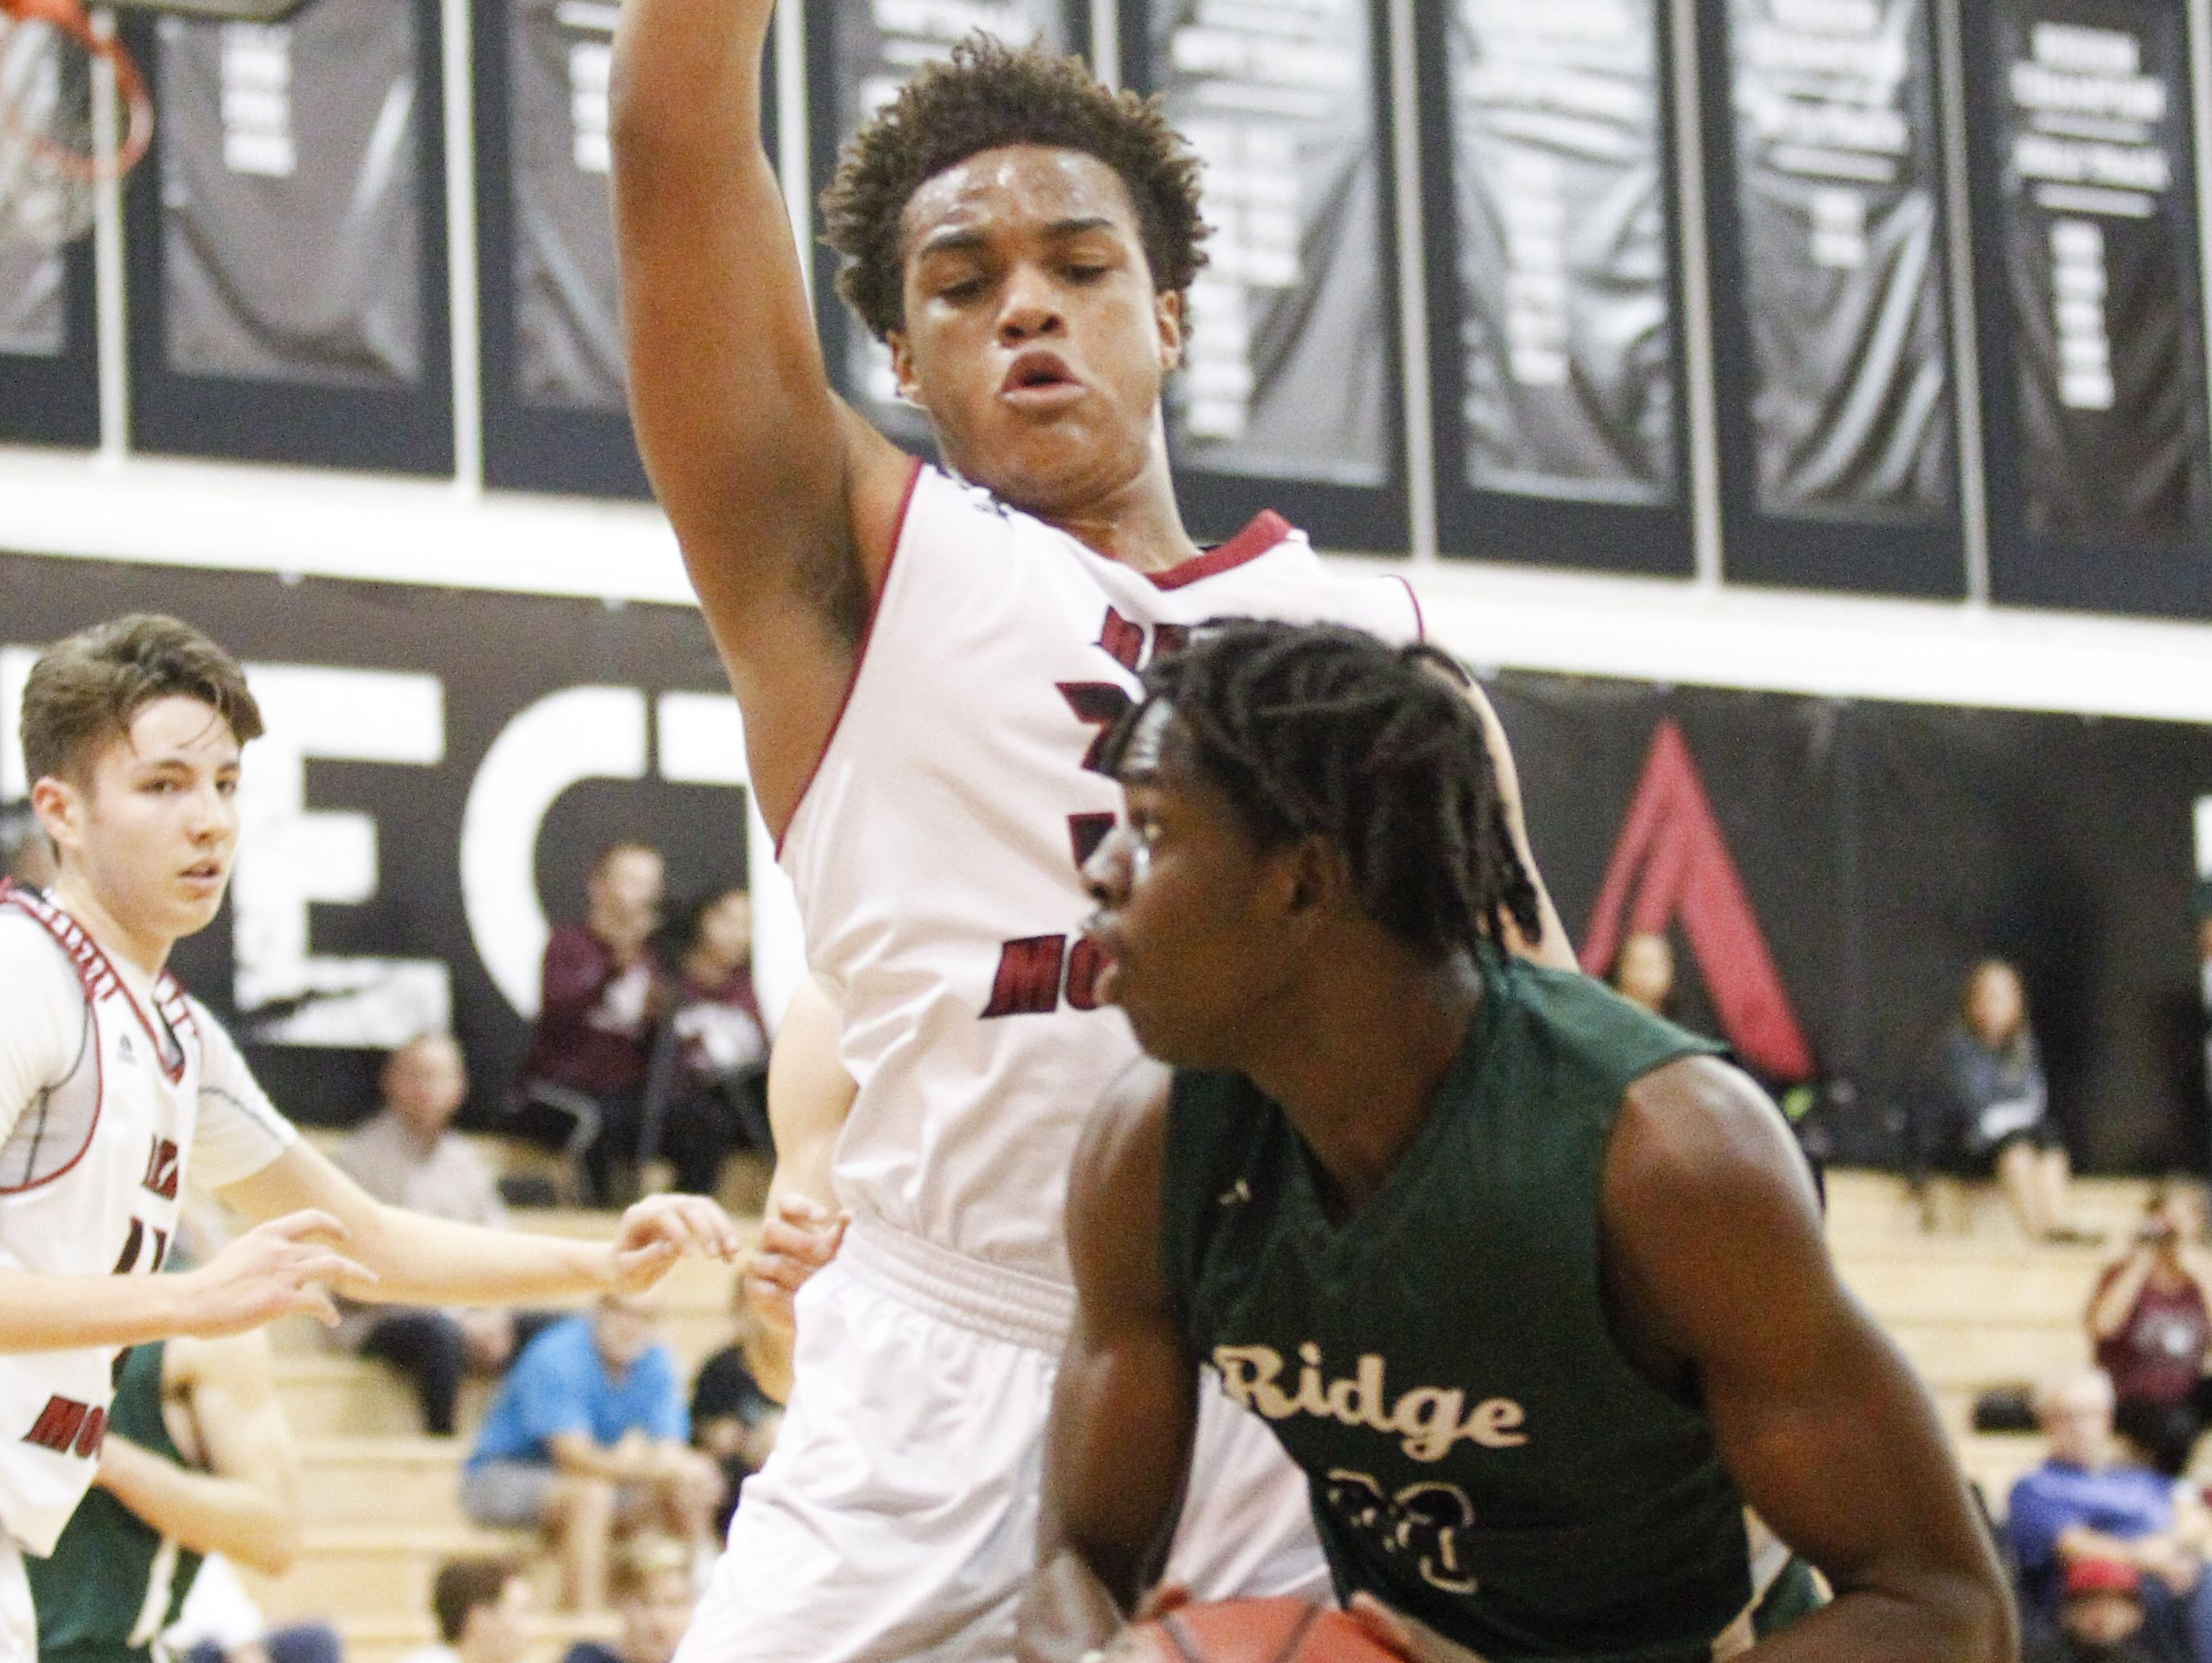 Mountain Ridge's Saikou Gueye (11) goes up for a layup as Red Mountain's Andre Harris (30) defends in the first half at Red Mountain High School in Mesa on Friday, Feb. 10, 2017.